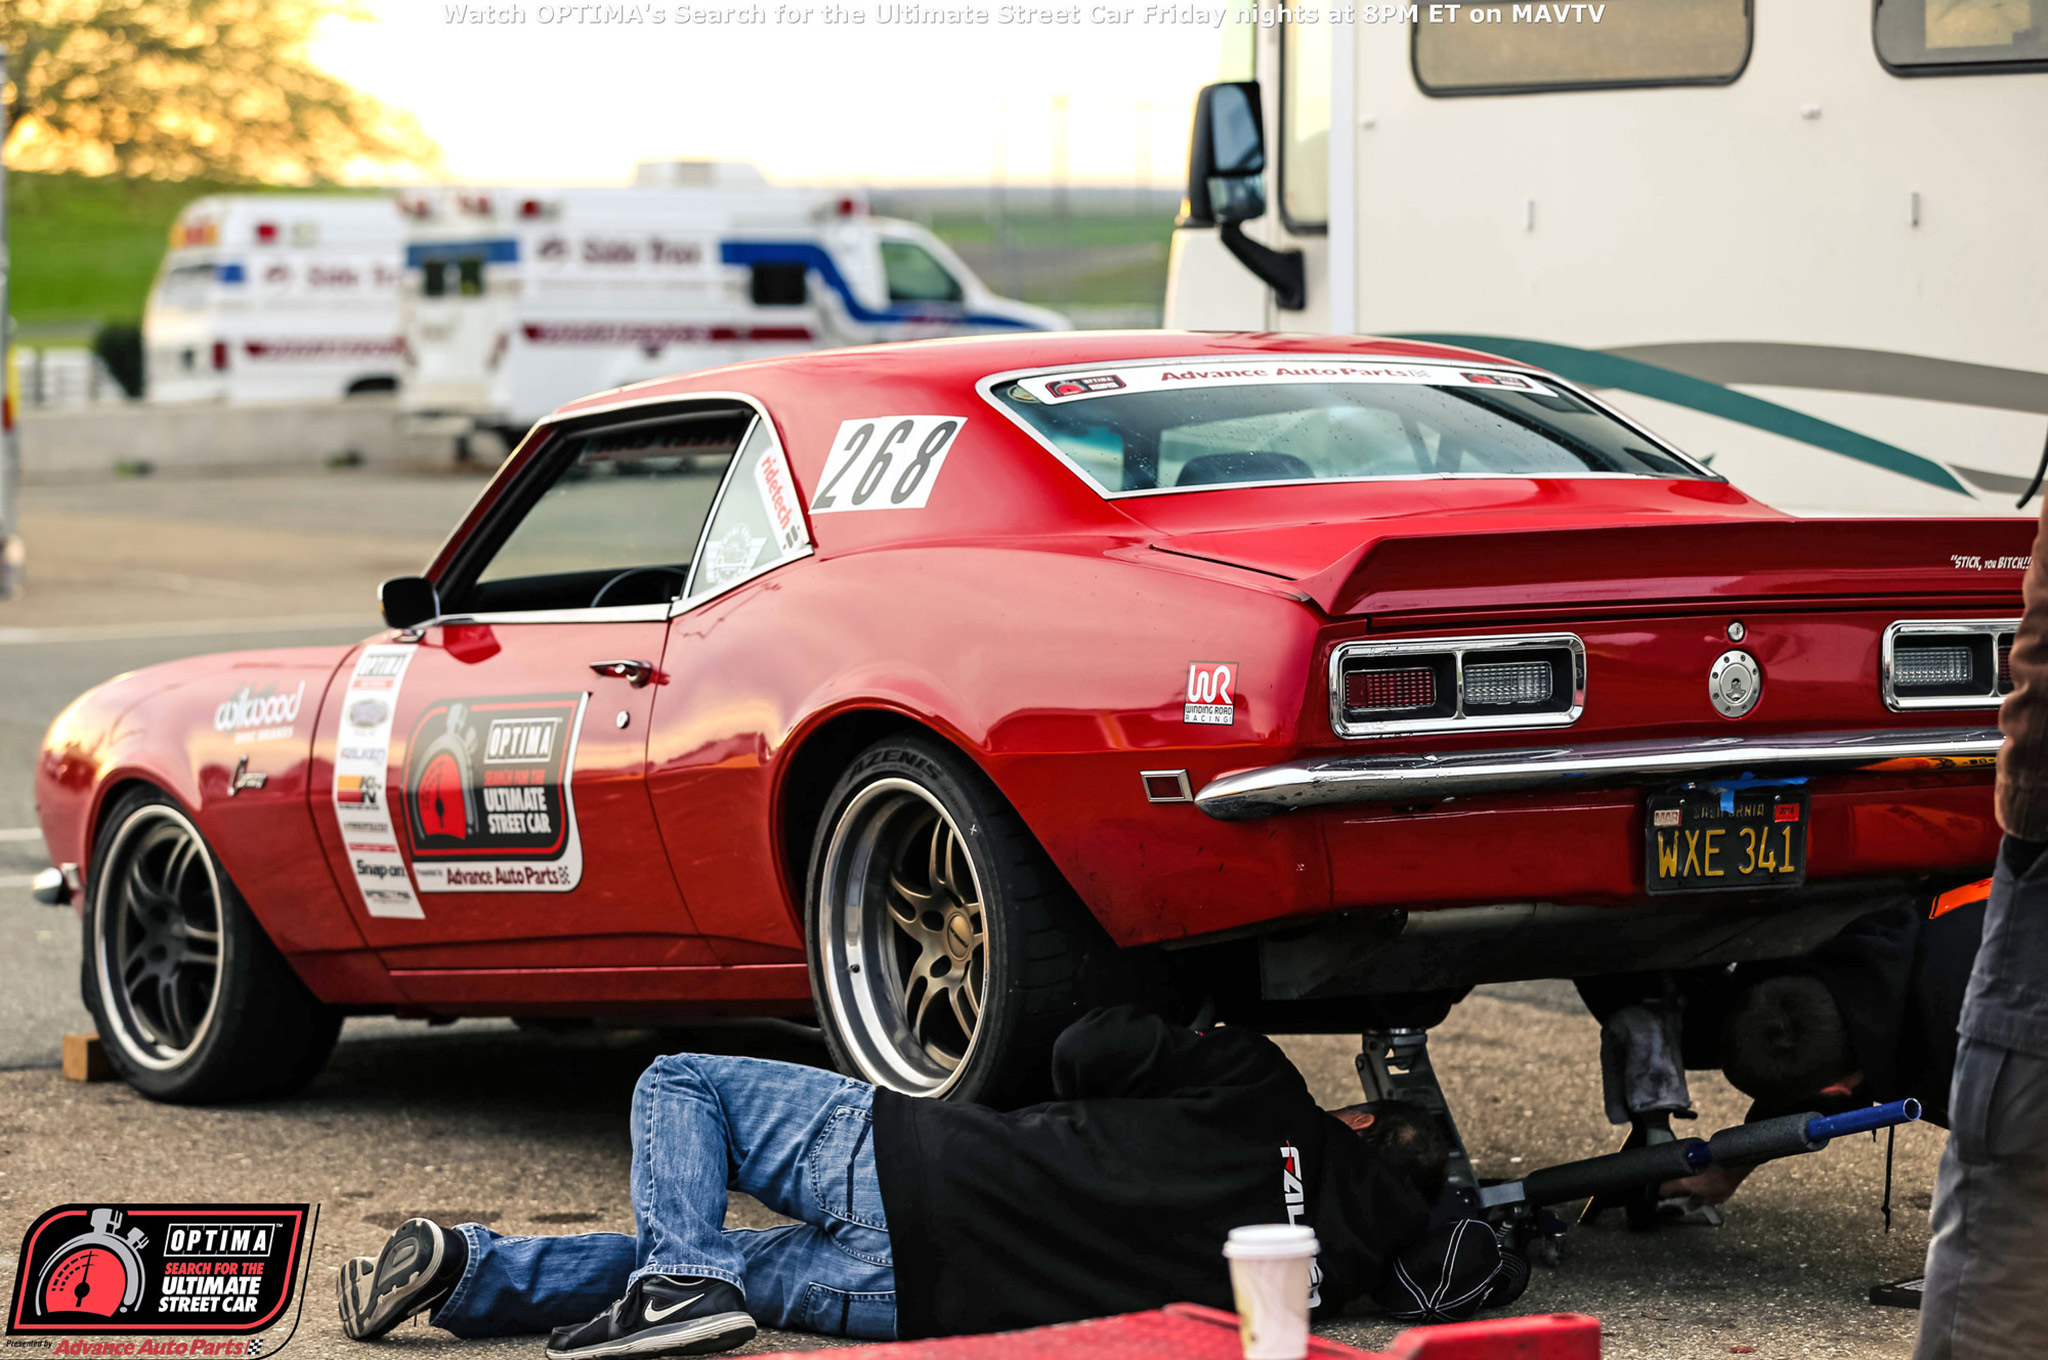 While many competitors trailered their vehicles to and from the event, Chad Ryker had no such safety net. He drove his 1968 Camaro to and from Thunderhill, with a little wrenching in between. He also managed an impressive Second-Place finish in the GTV class.